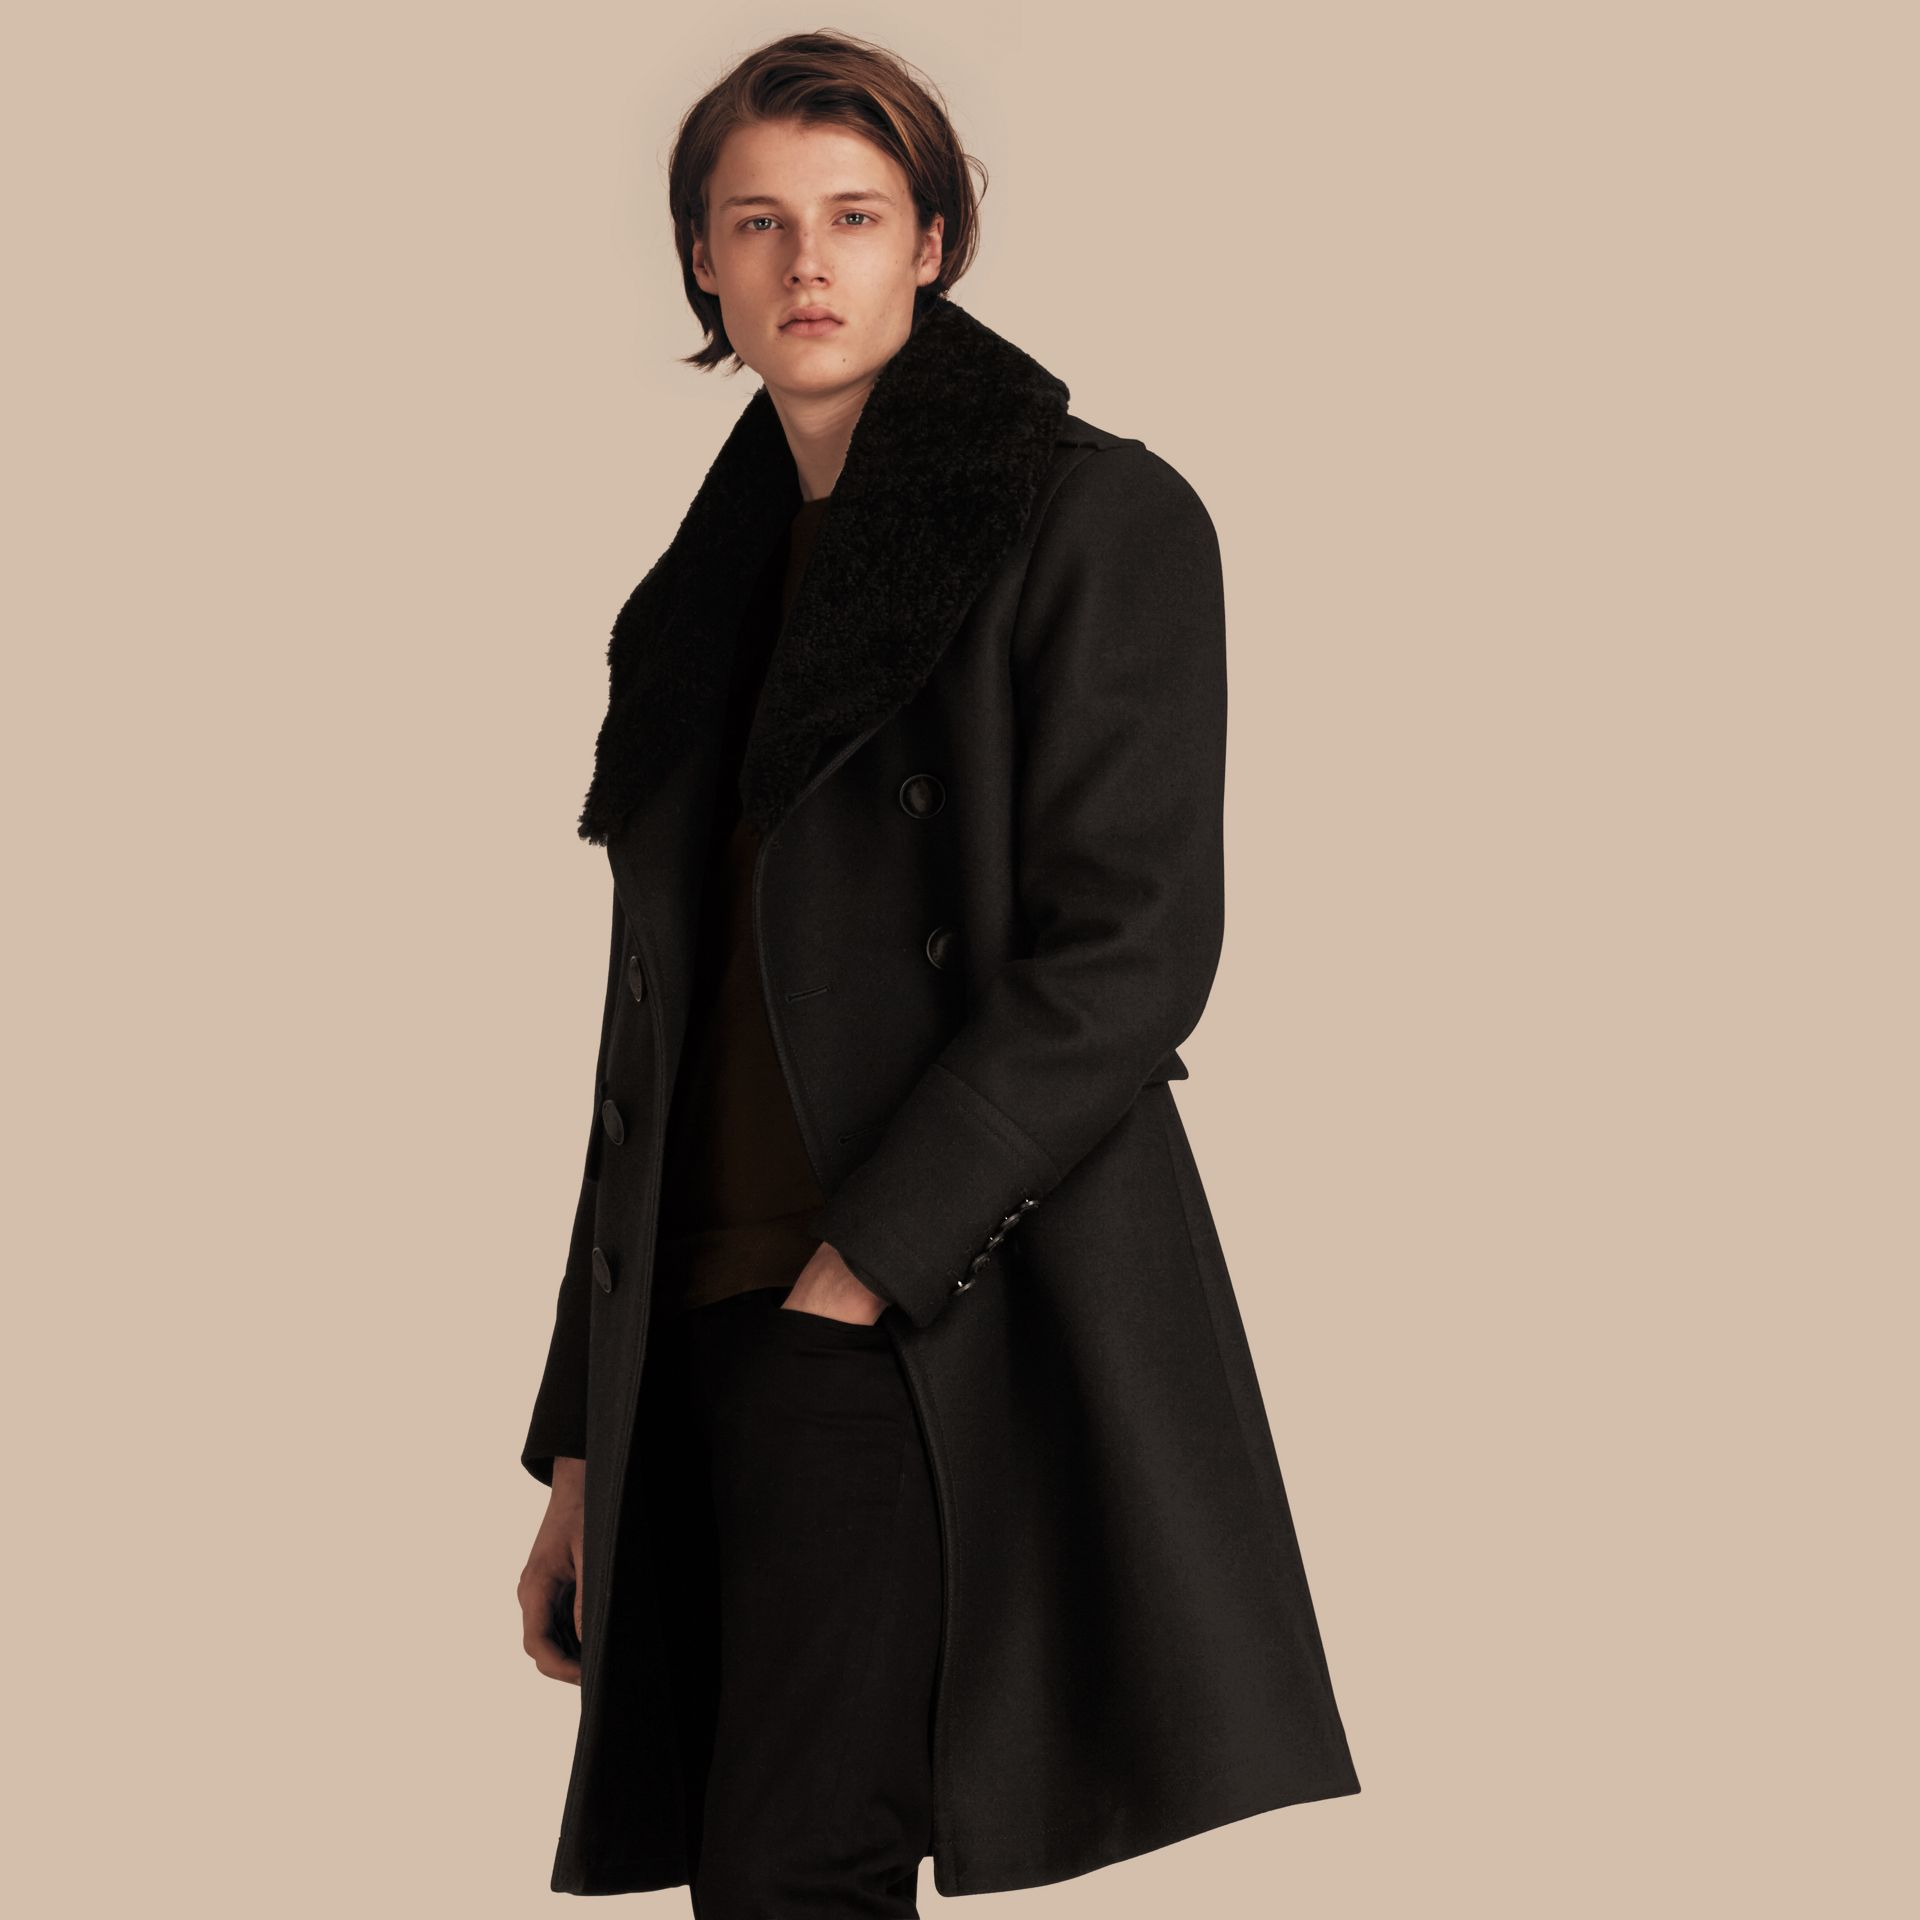 Black Technical Wool Greatcoat with Detachable Shearling Collar - gallery image 1